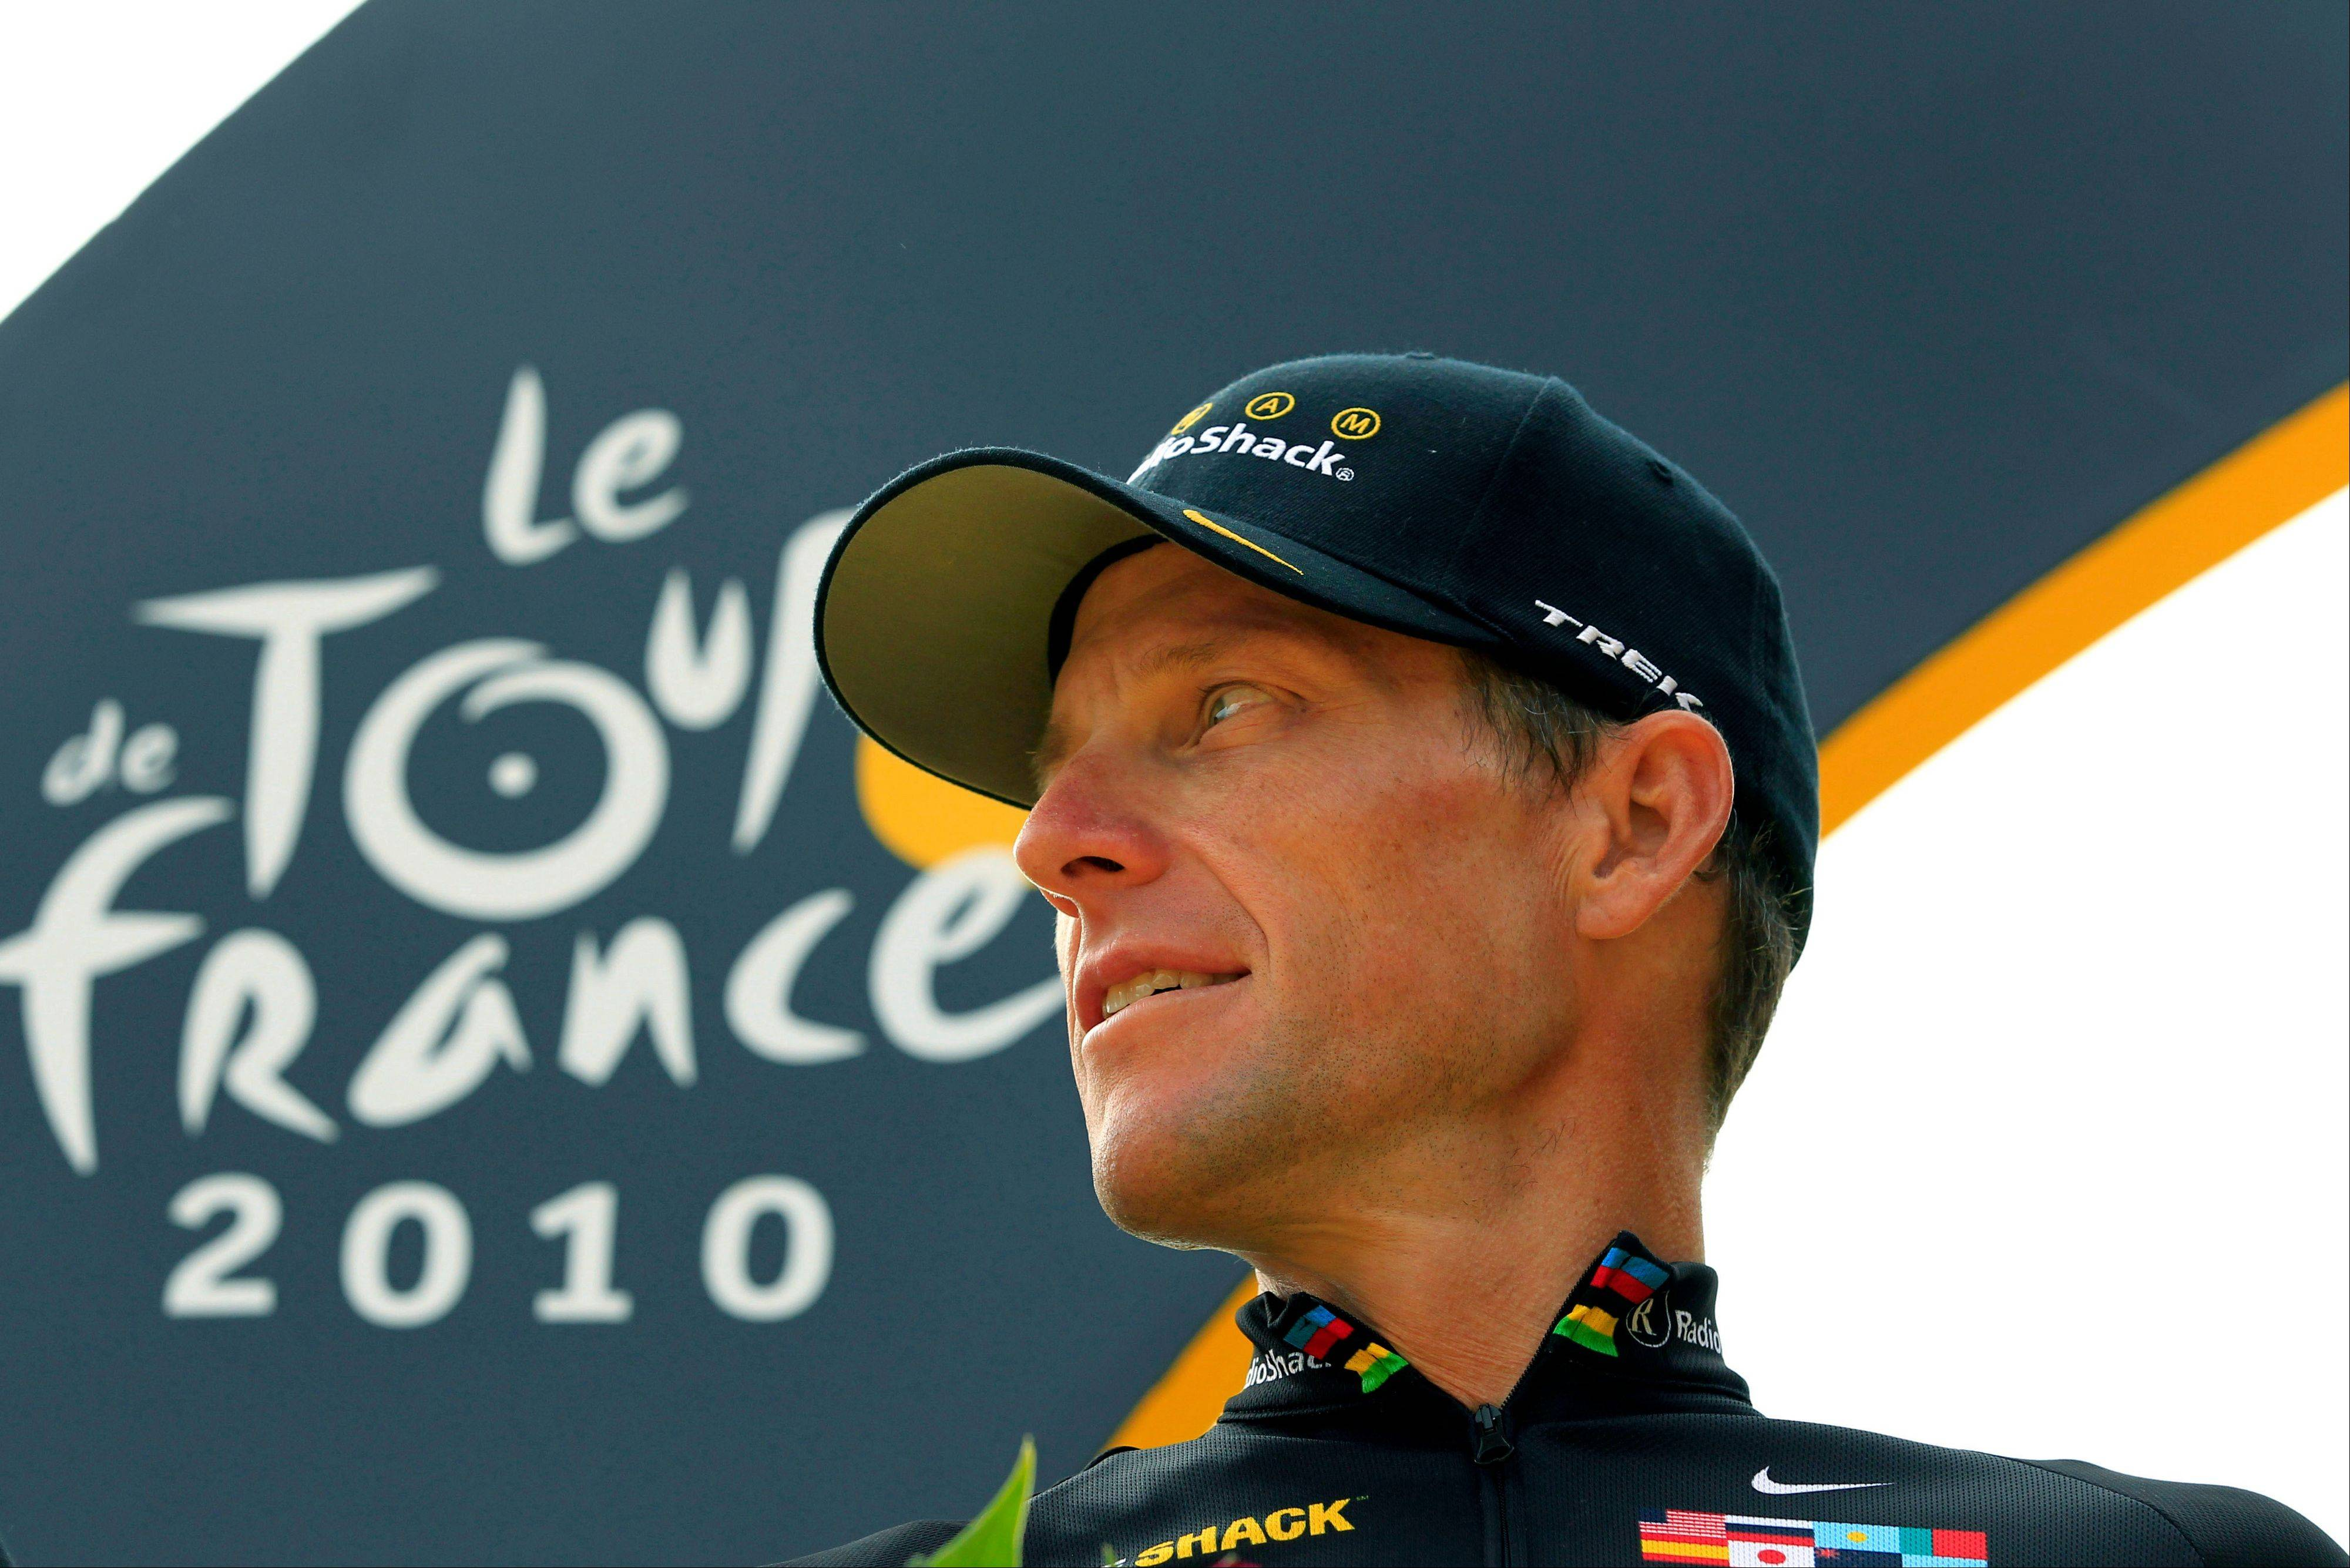 Experts on Lance: Everyone lies, some more than others